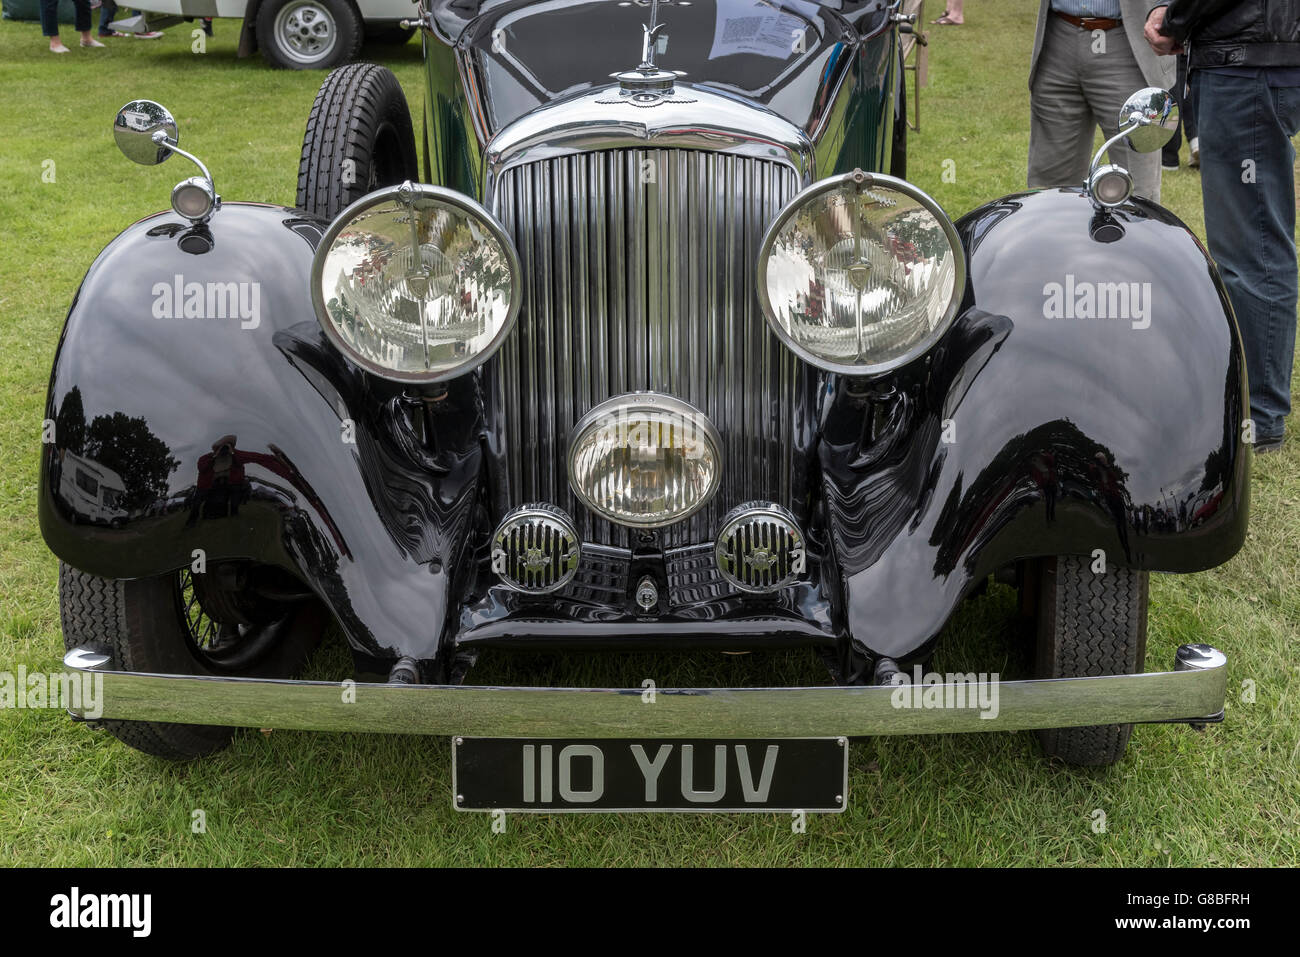 Vintage transport day at Lymm in Cheshire North West England. An old Bentley radiator gleams. - Stock Image